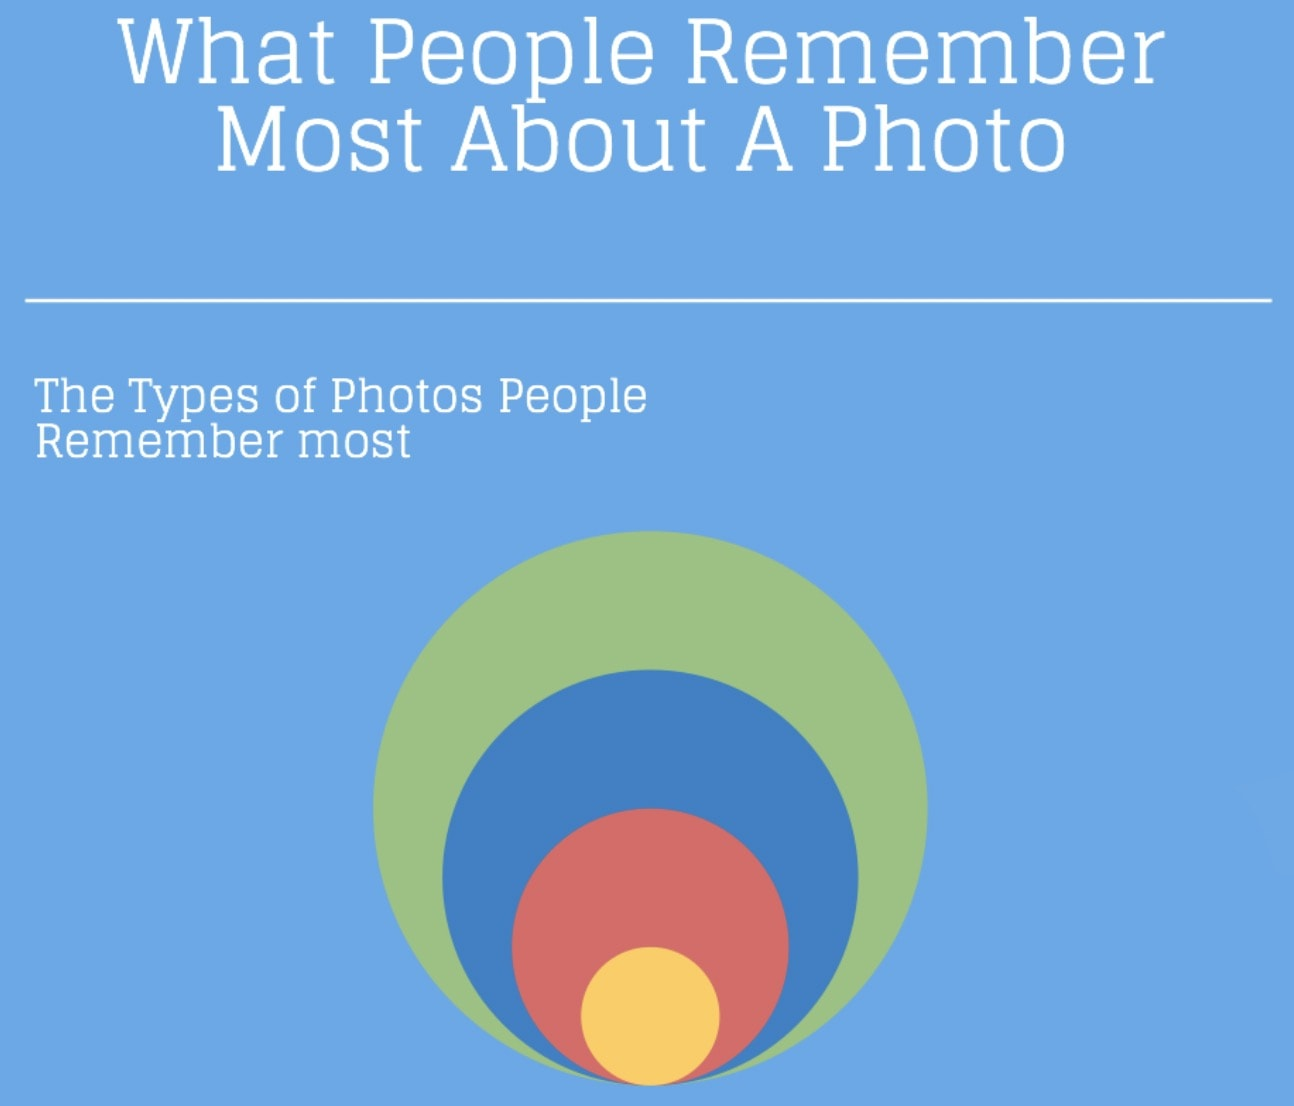 What People Remember Most About A Photo Infographic by Matthew T Rader